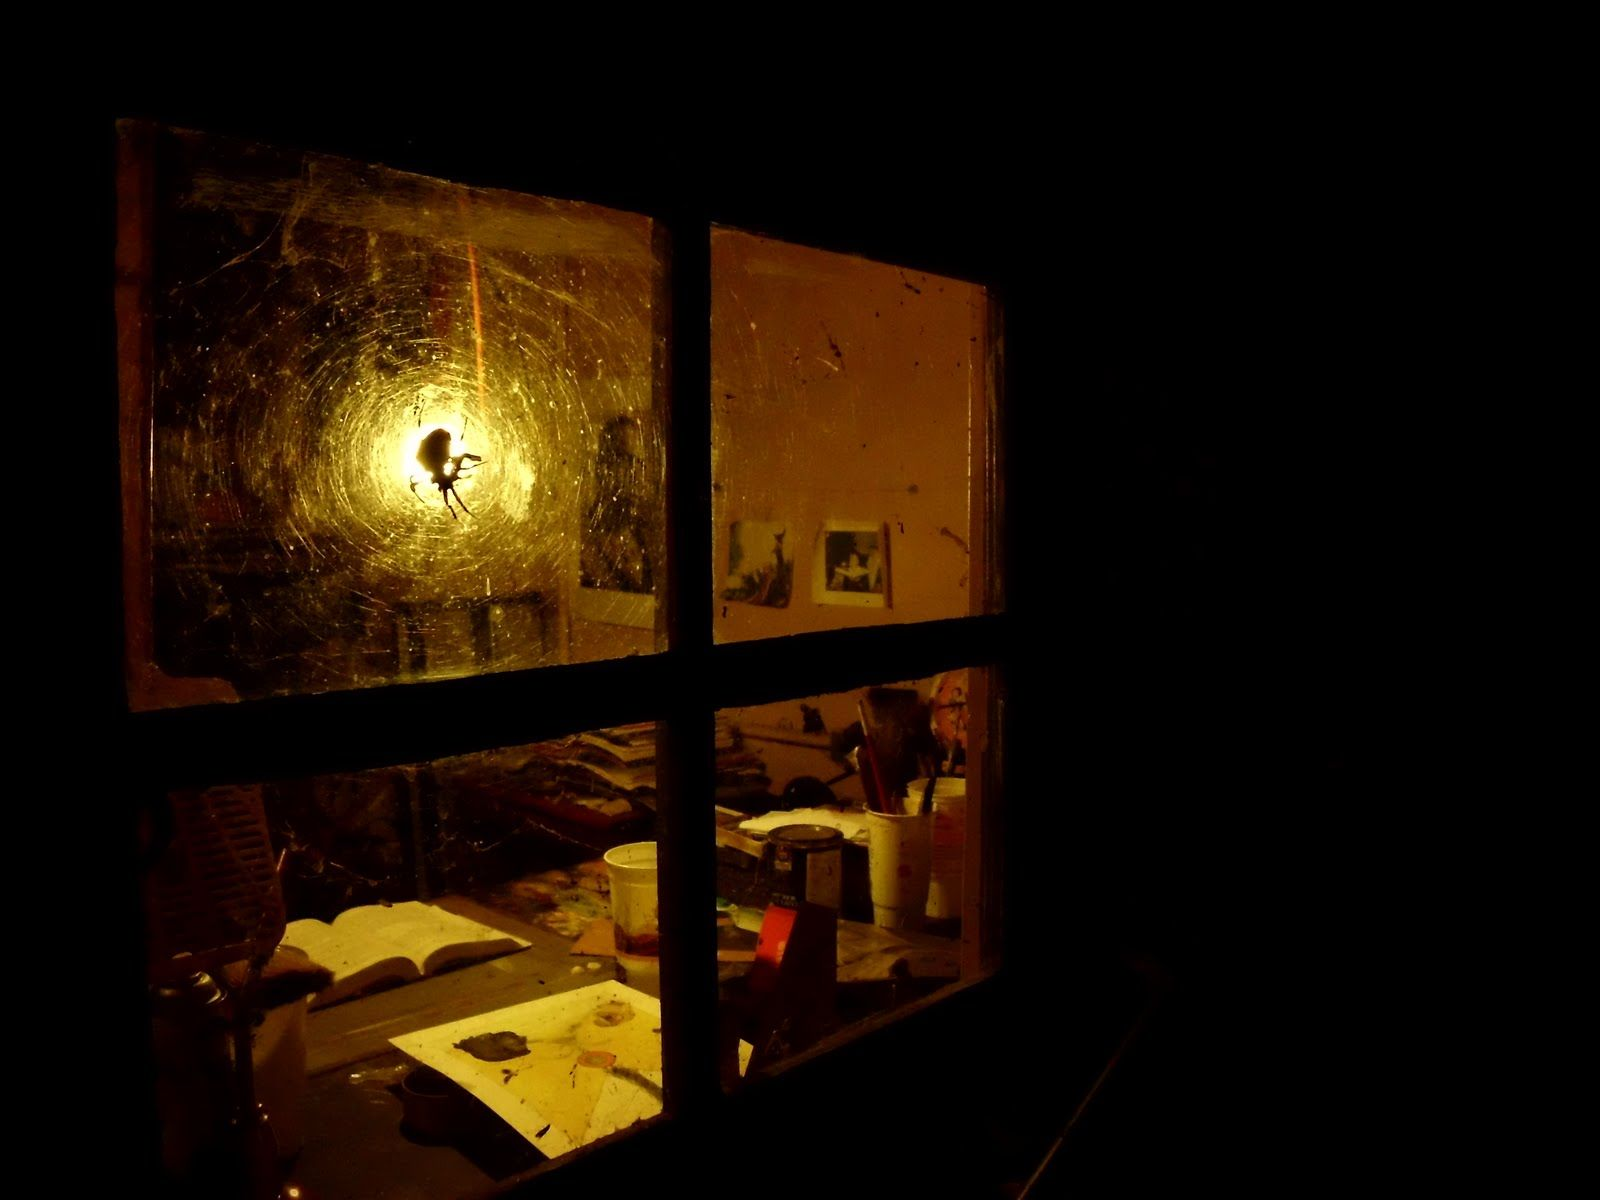 Window at night from outside - Find This Pin And More On Pg 3 Looking Through Night Windows 3